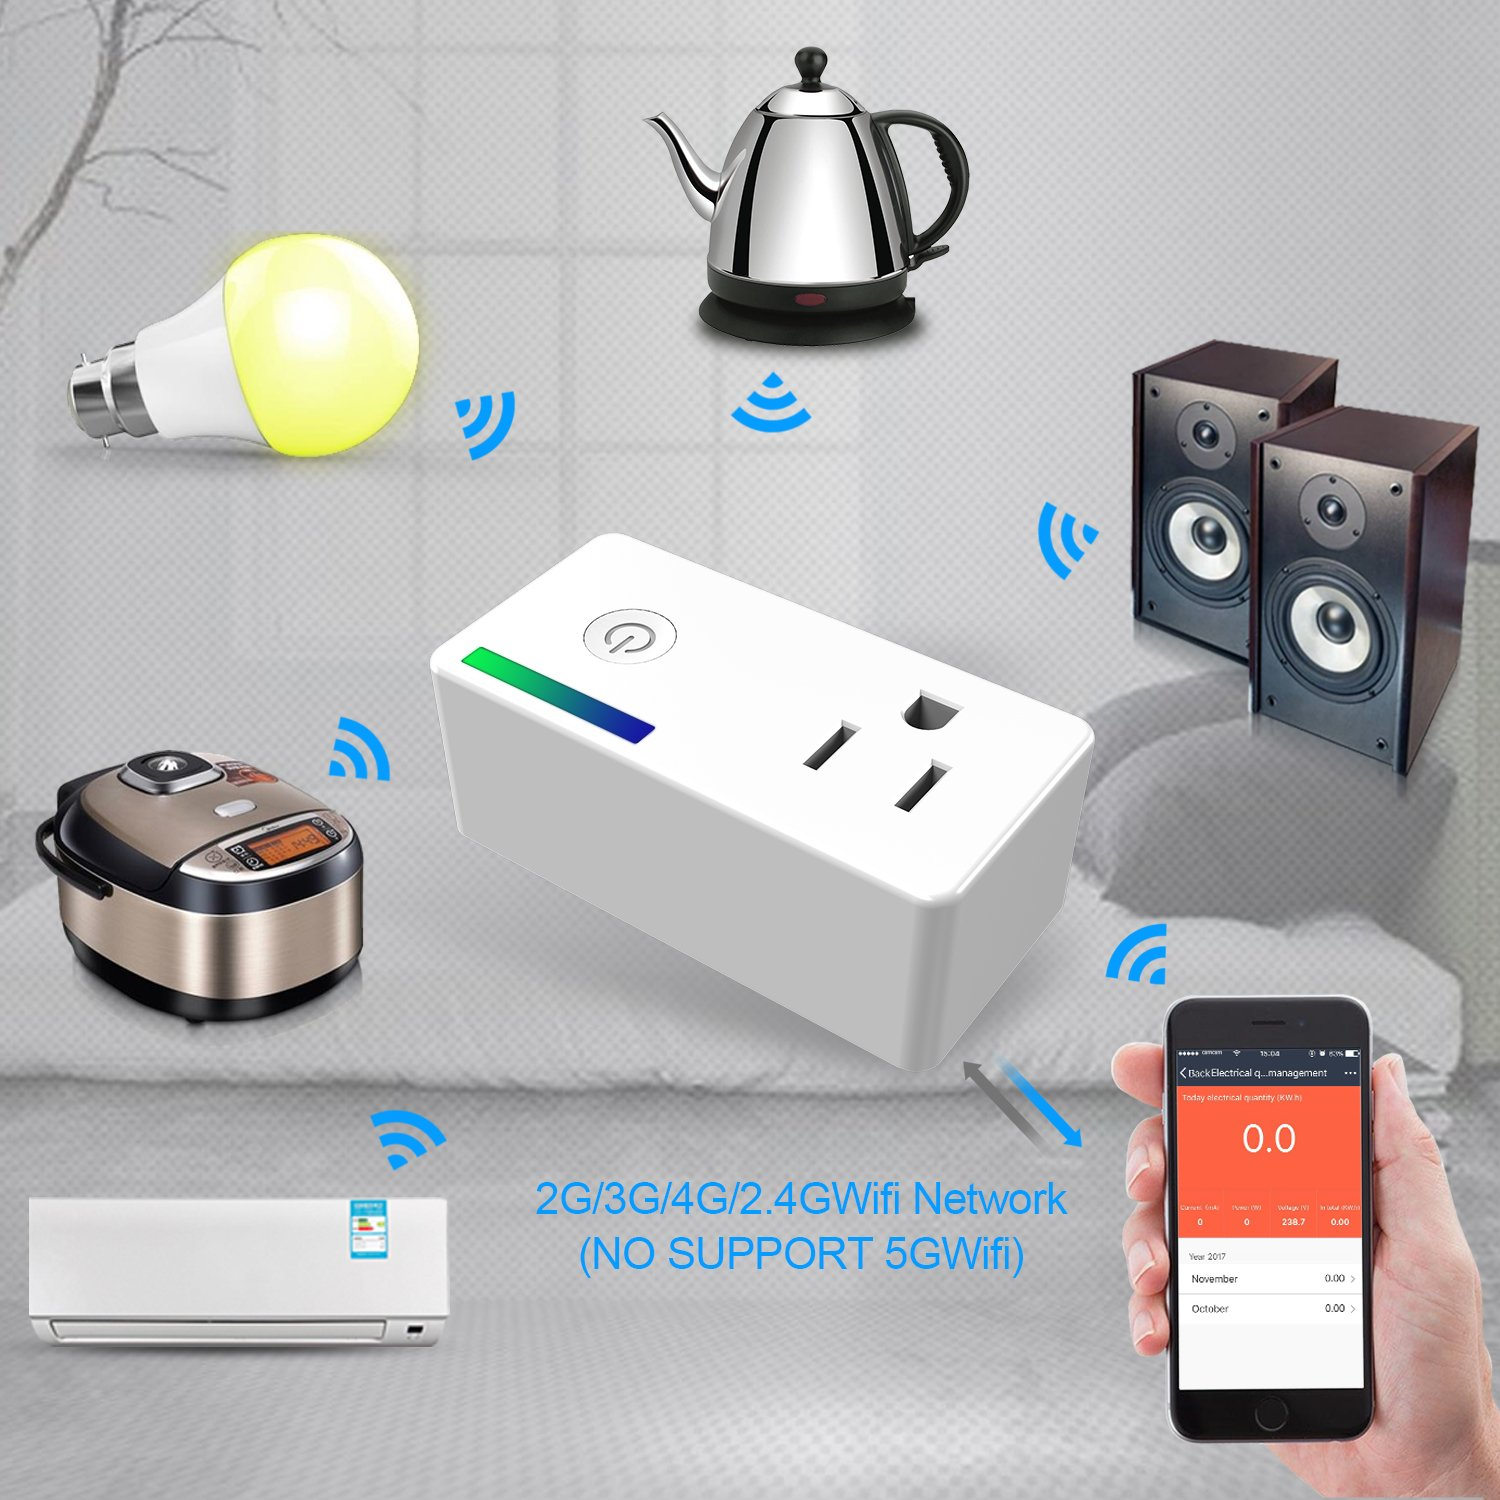 WiFi Smart Plug, Mini Smart Socket Outlet with Energy Monitoring, Compatible with Alexa and Google Assistant, Timing Function, Remote Control Your Devices Anywhere, No Hub Required - 2 Packs